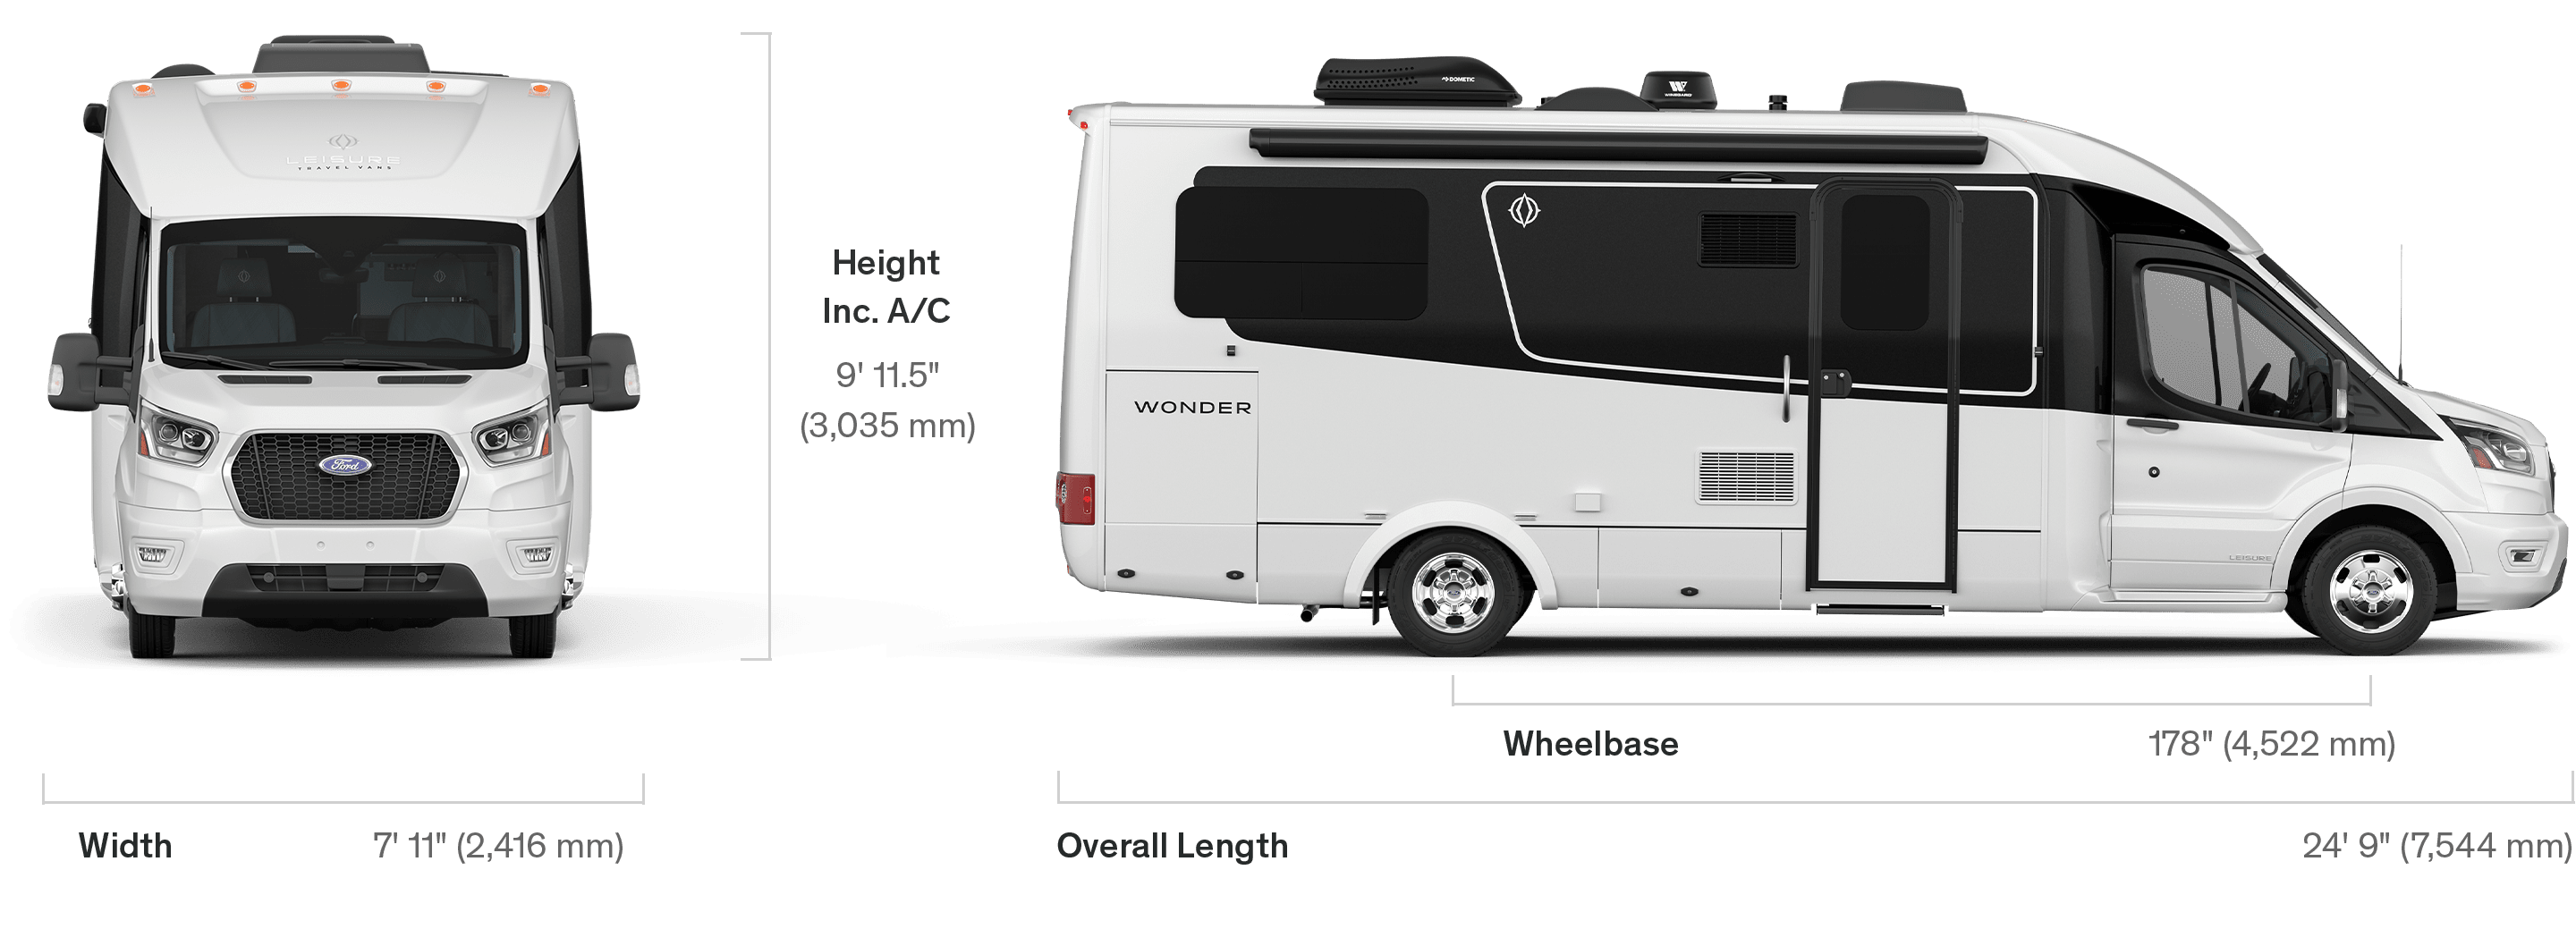 Wonder - Specifications - Leisure Travel Vans